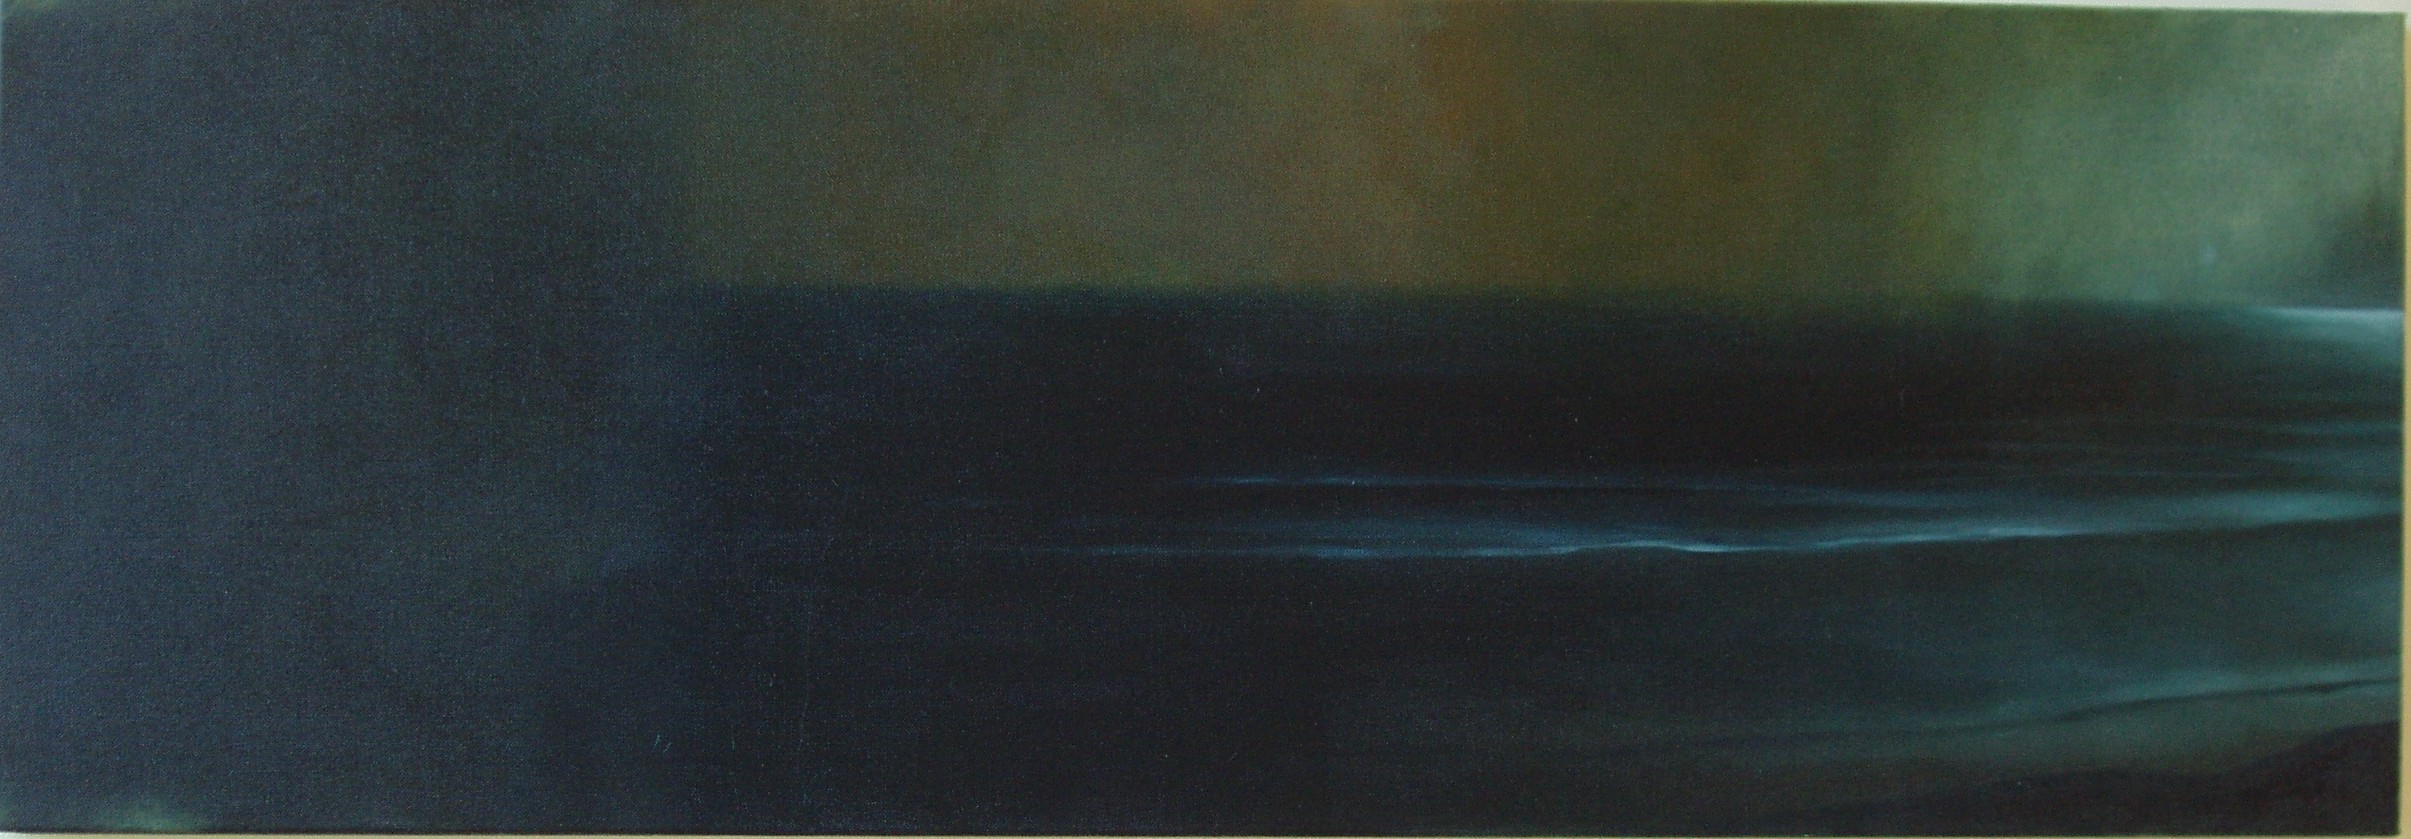 To let drop like rain, 1000x400mm, oil on canvas, 2005